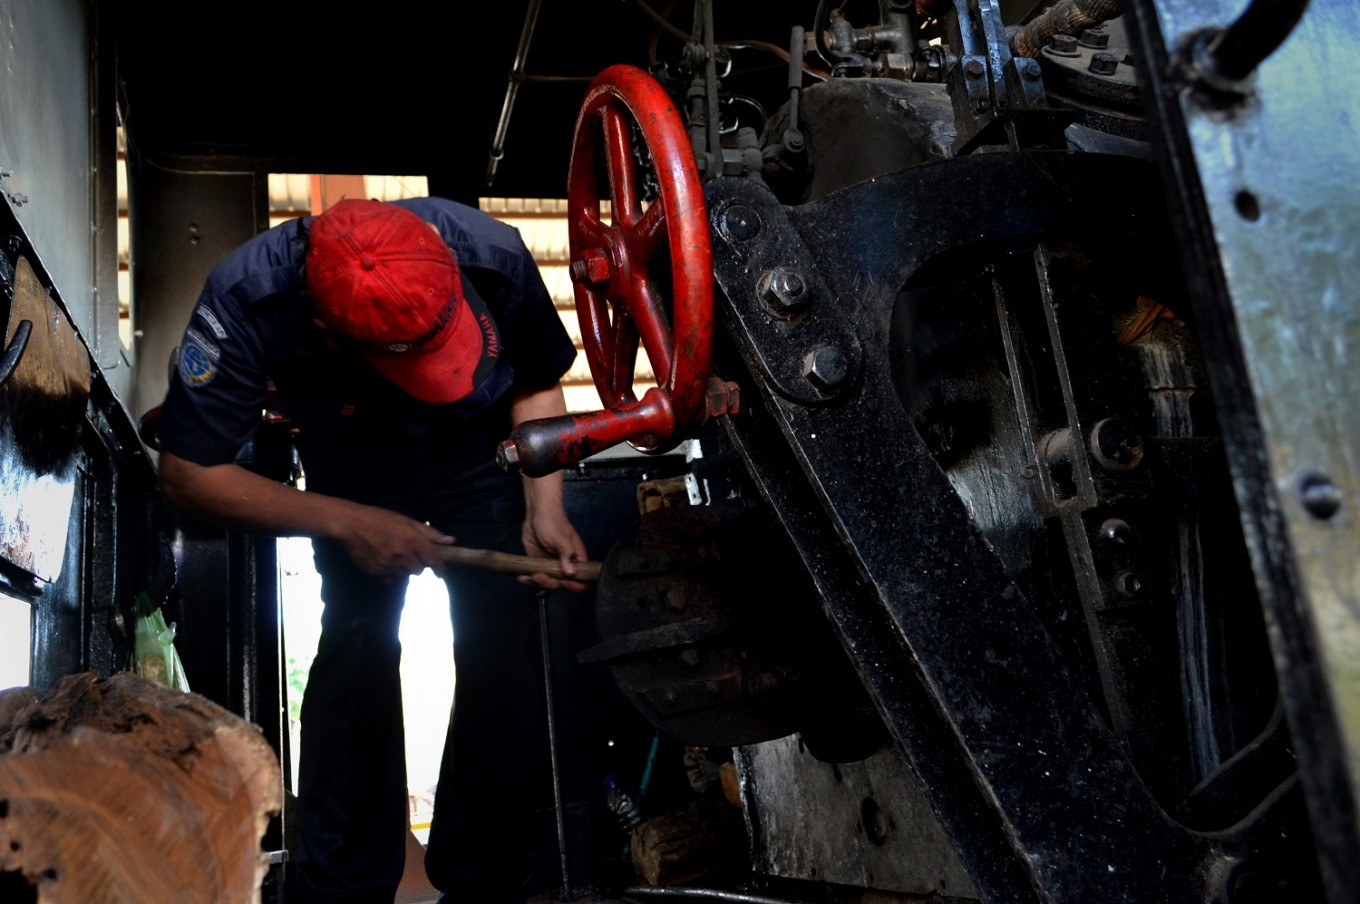 The engineer checks the locomotive's boiler prior to departure.